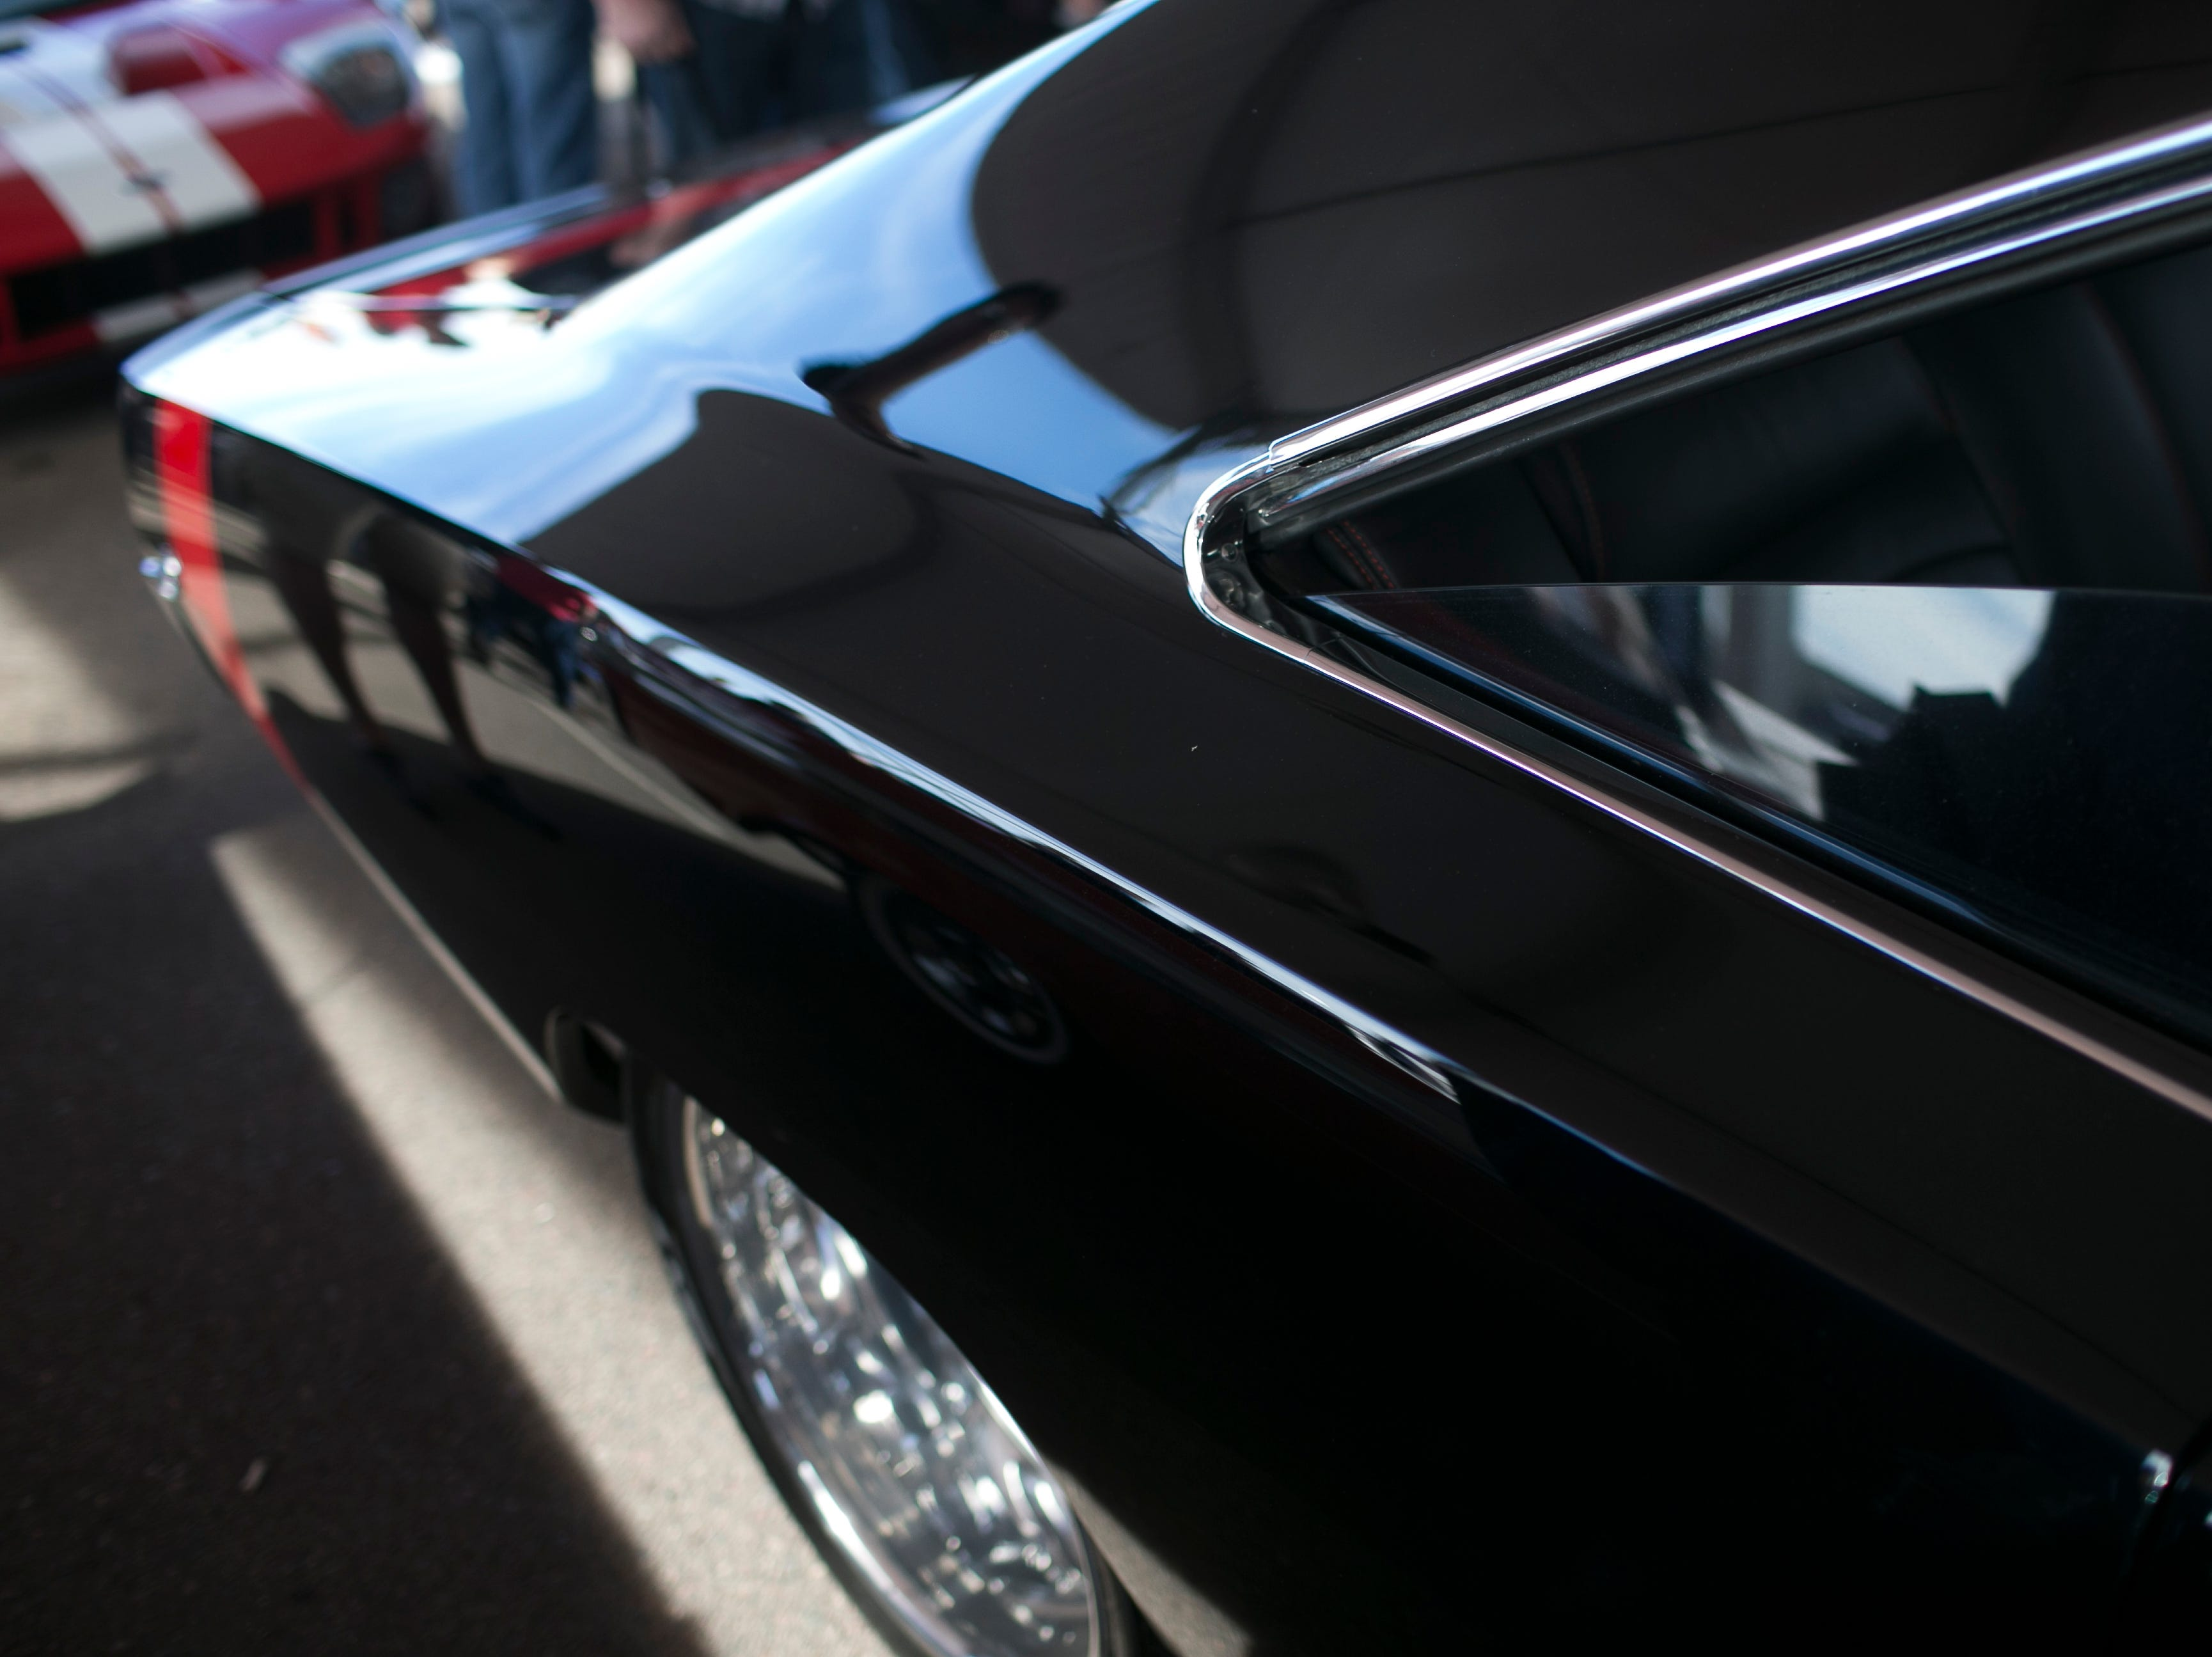 Cardinals Wide Receiver Larry Fitzgerald's custom built turbo-paired engined 1968 Charger is auctioned at Barrett-Jackson collector-car auction for $100,000 at WestWorld on Sat. January 19, 2019 in Scottsdale, Ariz.